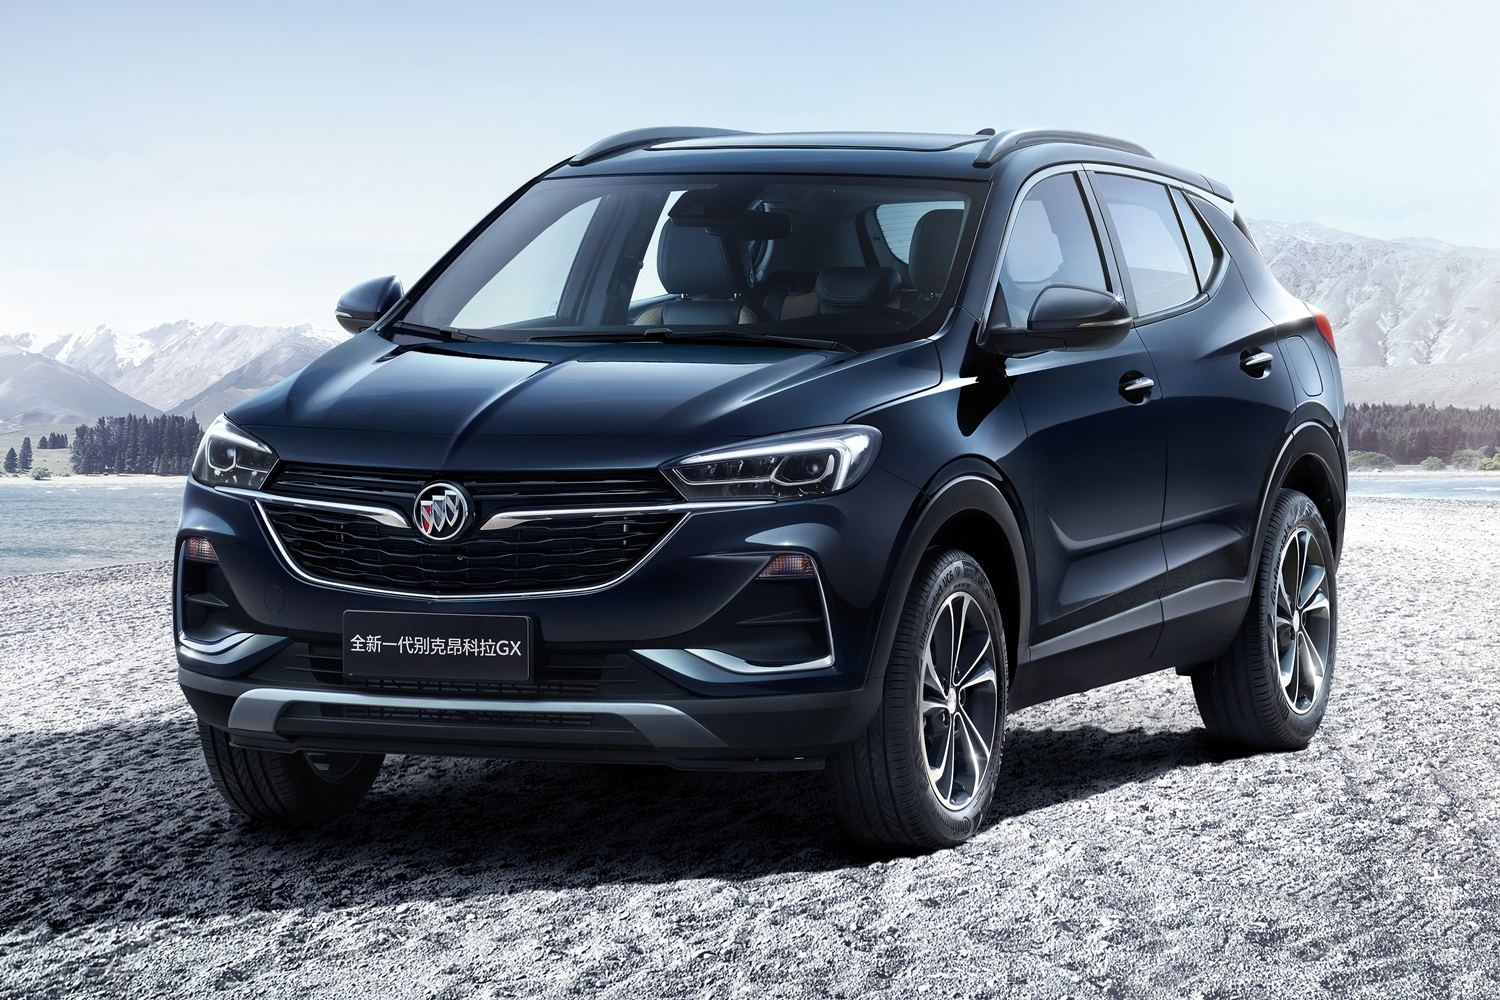 New Buick Encore Gx Images Released: Photo Gallery | Gm New 2022 Buick Encore Gx Build And Price, Build, Colors